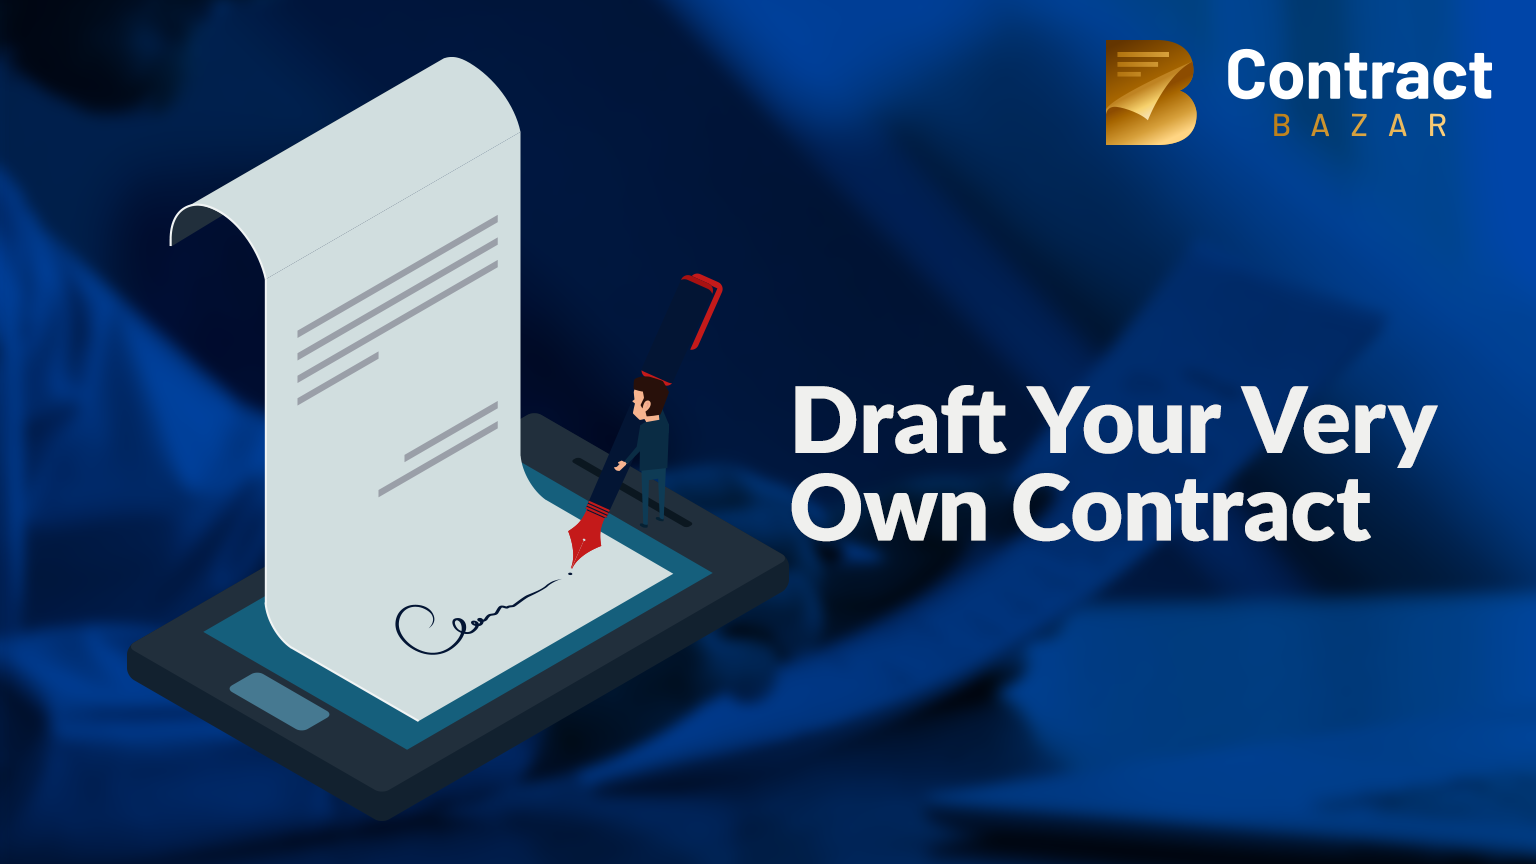 How to draft a Legal Contract without a Lawyer